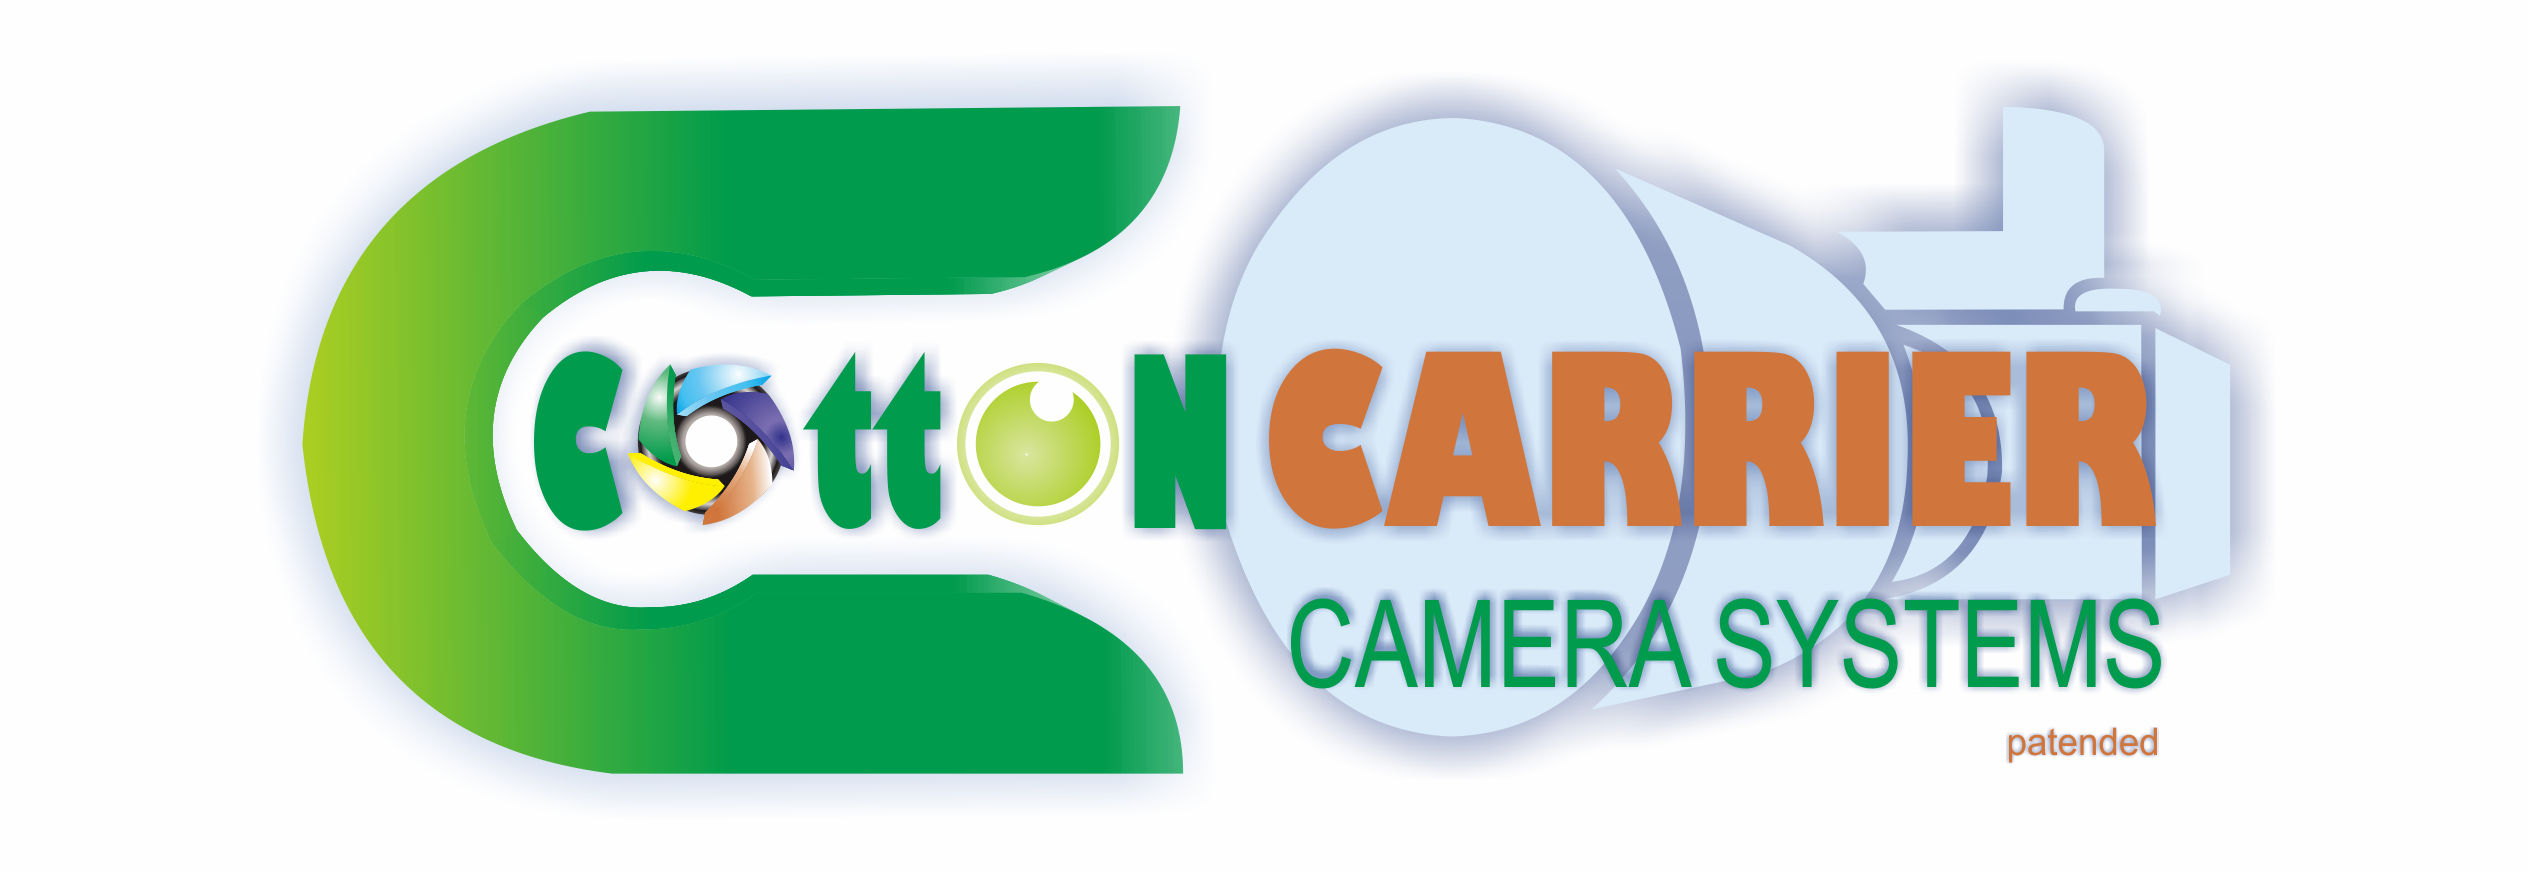 Logo Design by Teguh Hanuraga - Entry No. 2 in the Logo Design Contest Cotton Carrier Camera Systems Logo Design.